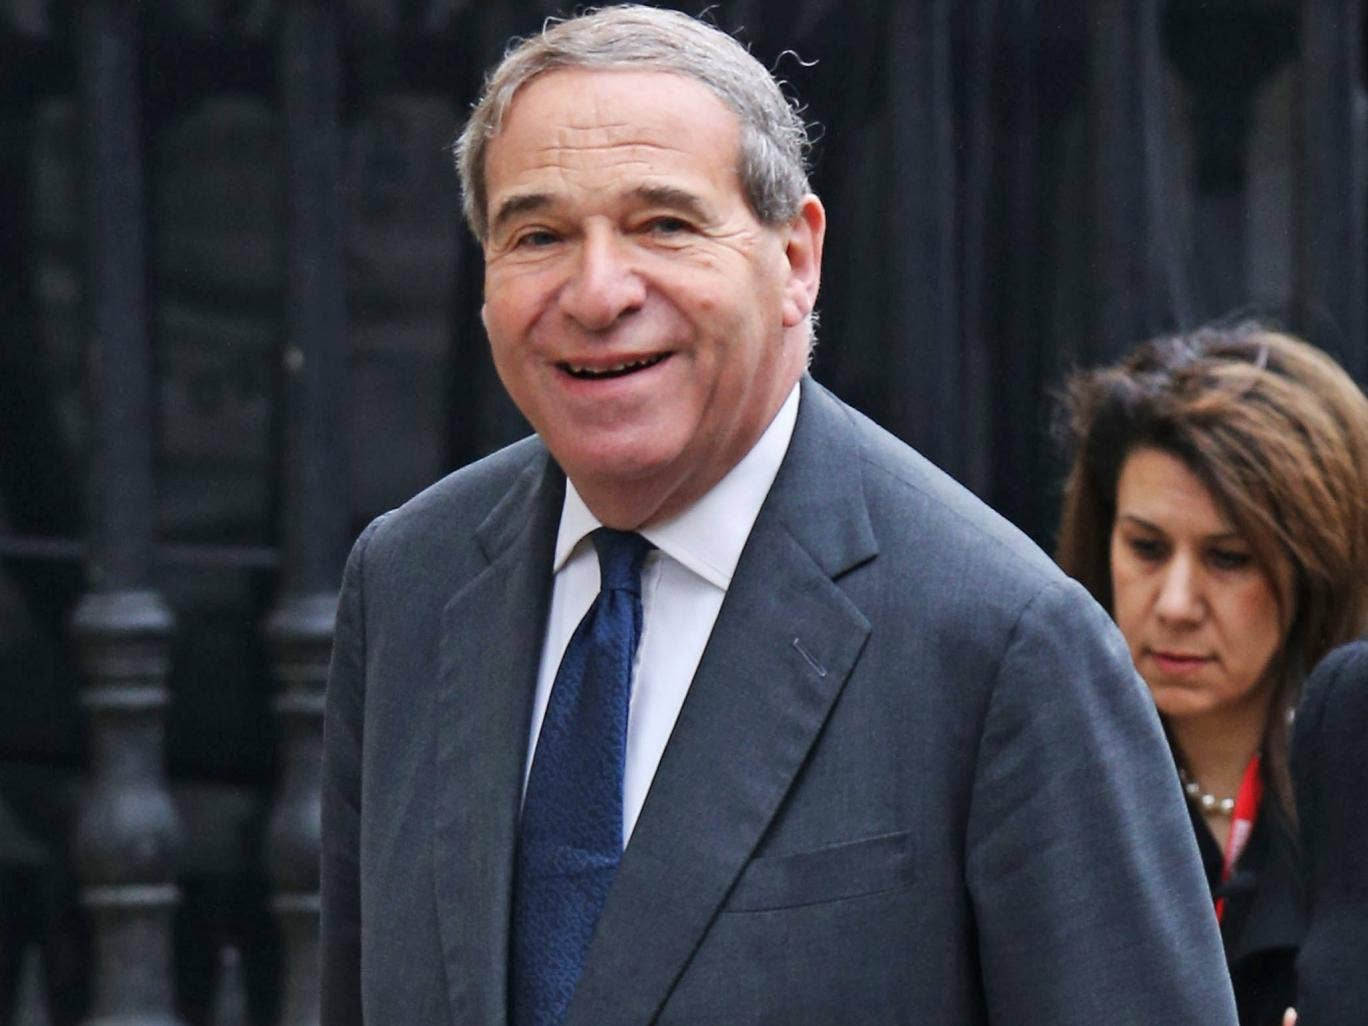 Leon Brittan has said he was handed the Dickens dossier but passed it on to Home Office staff